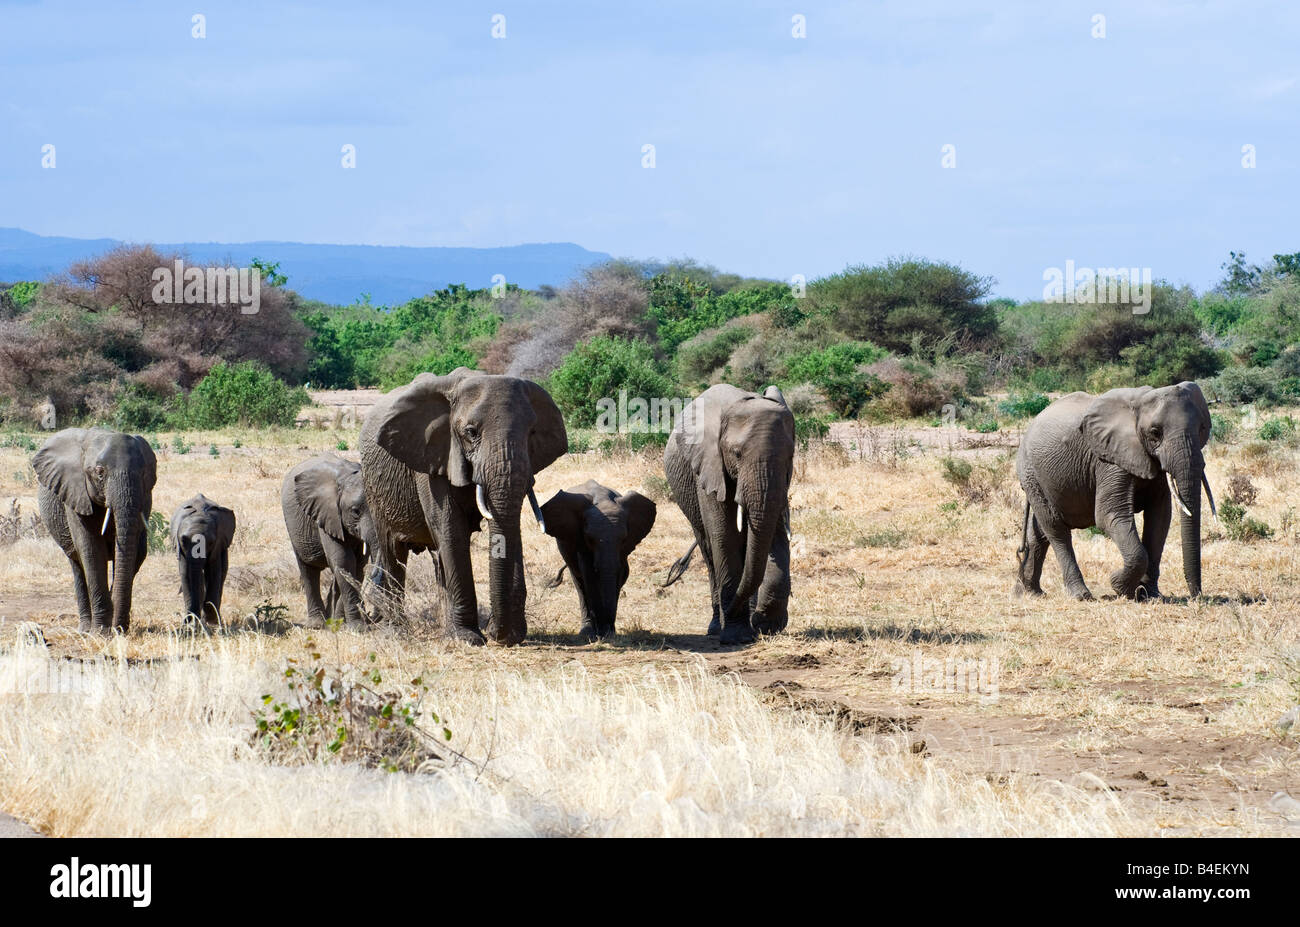 Tanzania Lake Manyara National Park elephants Loxodonta africana - Stock Image